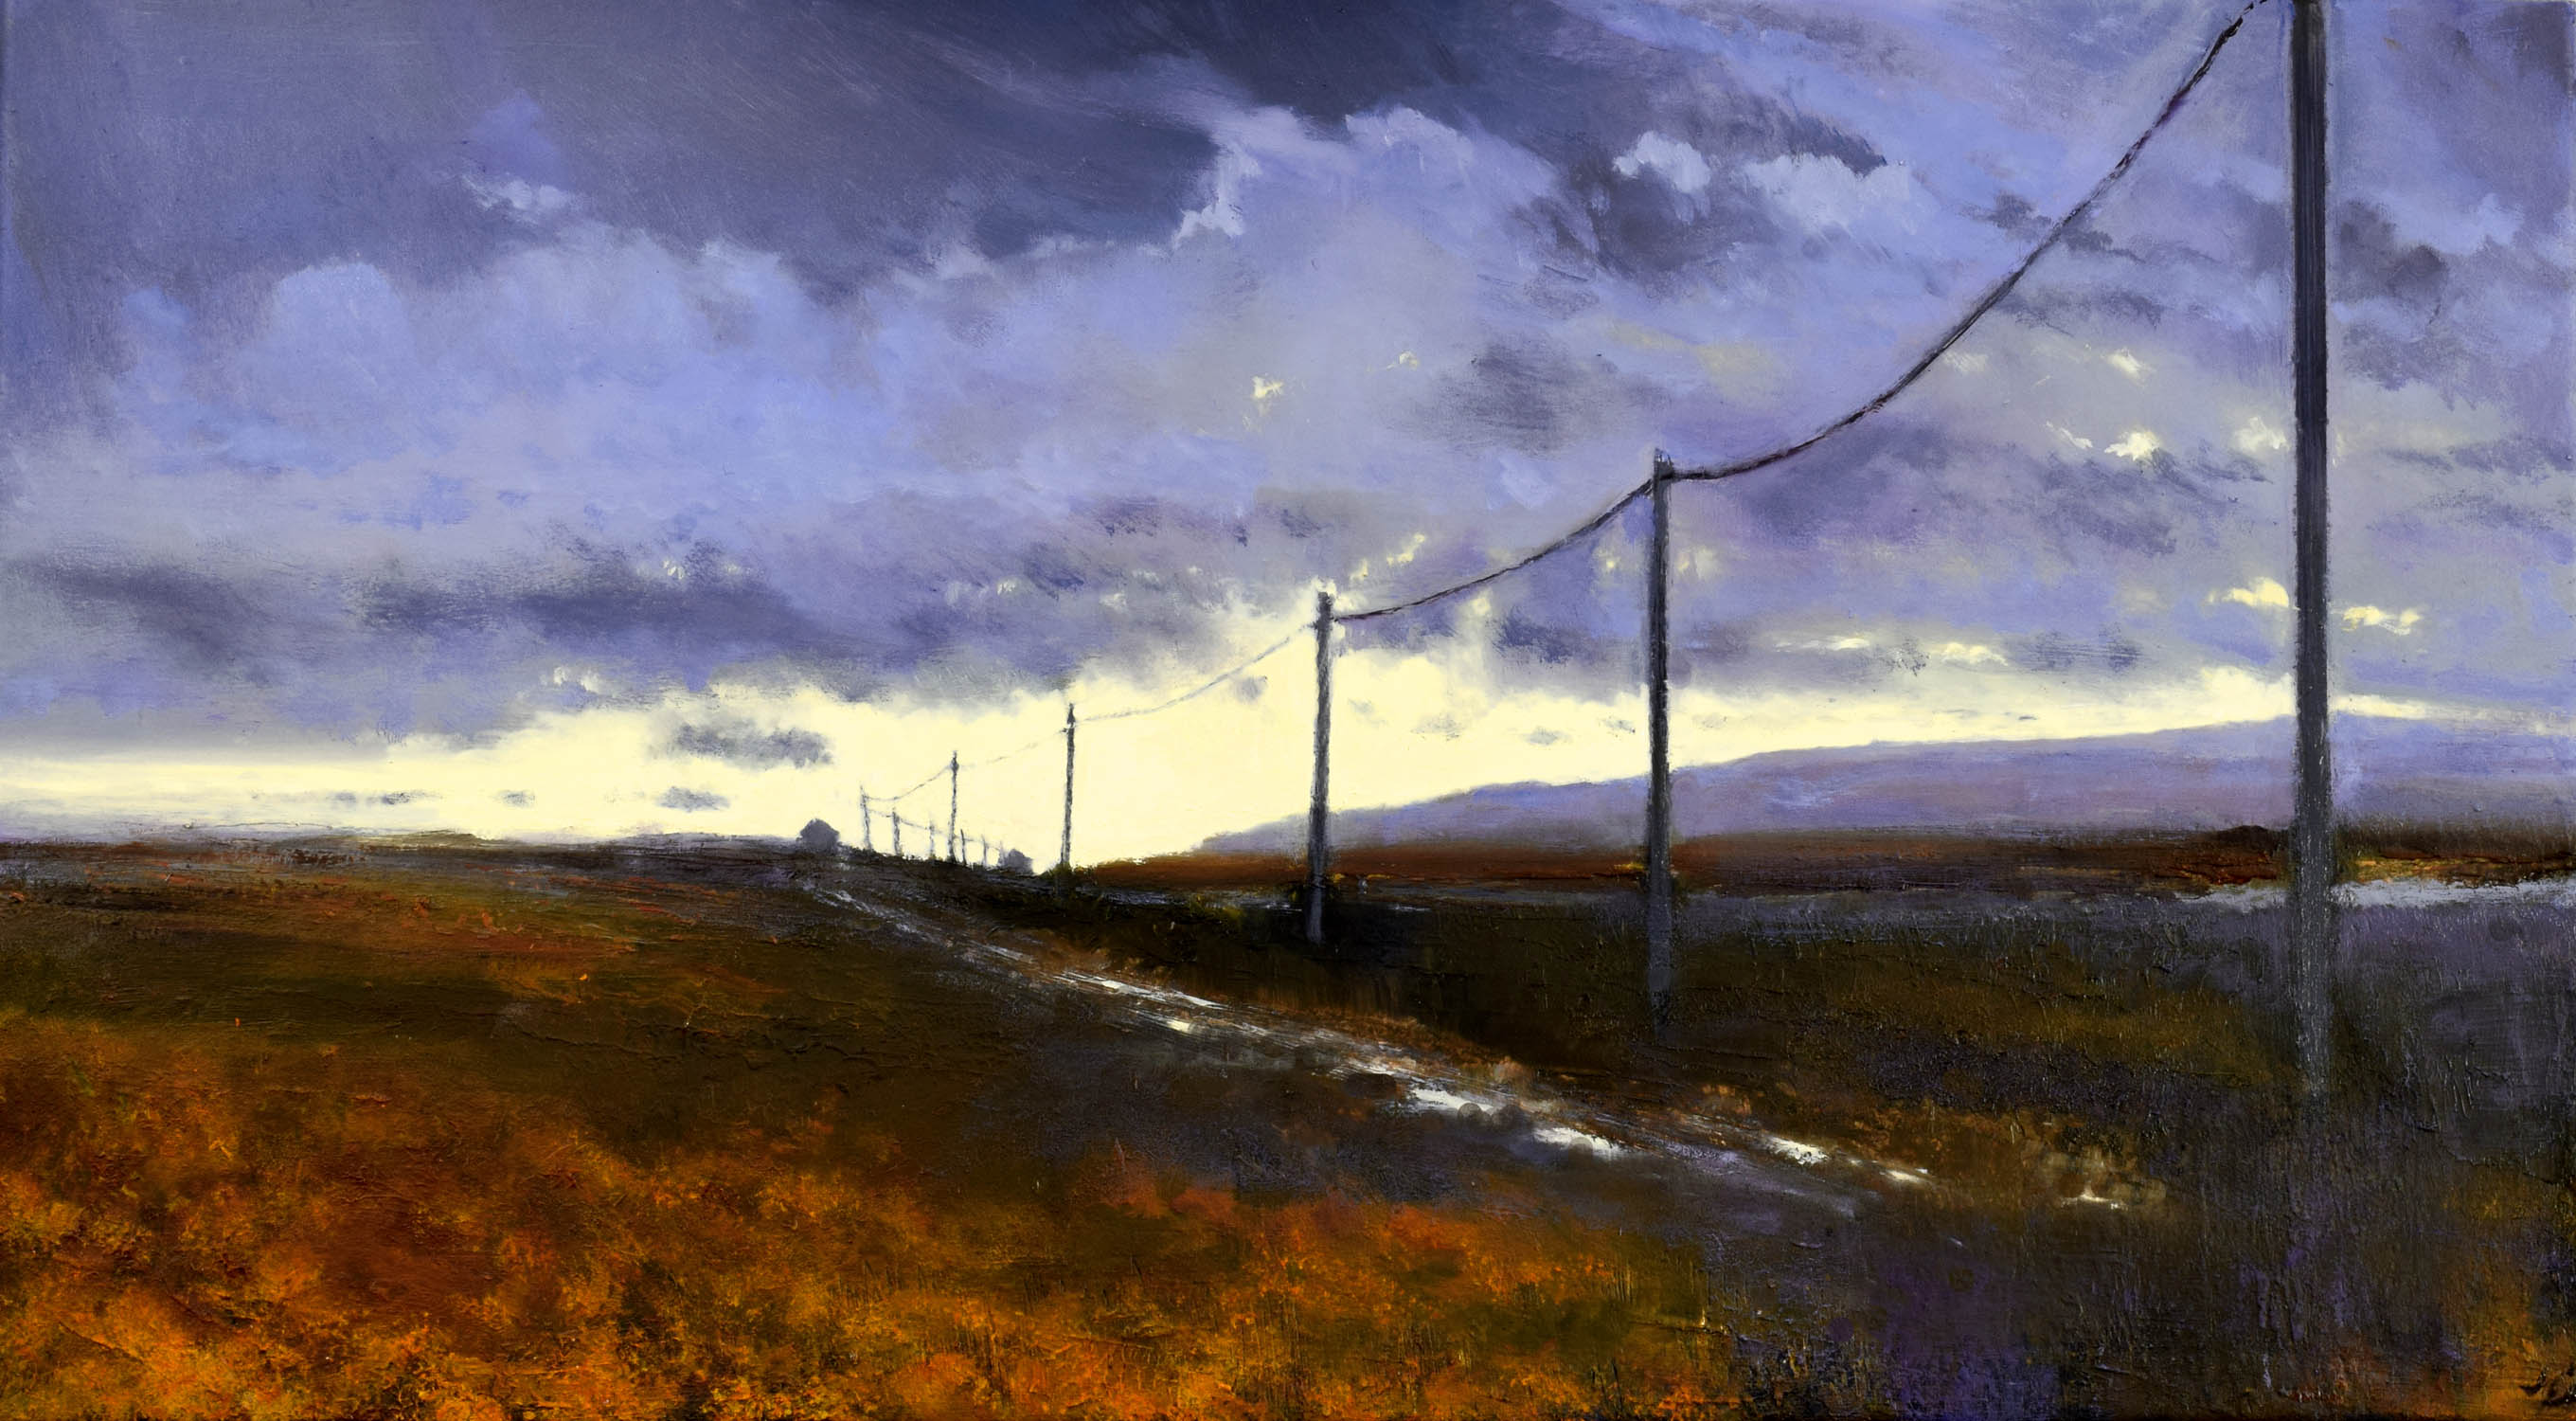 Into the Light, John O'Grady | Irish landscape painting of Irish bogland with telephone poles